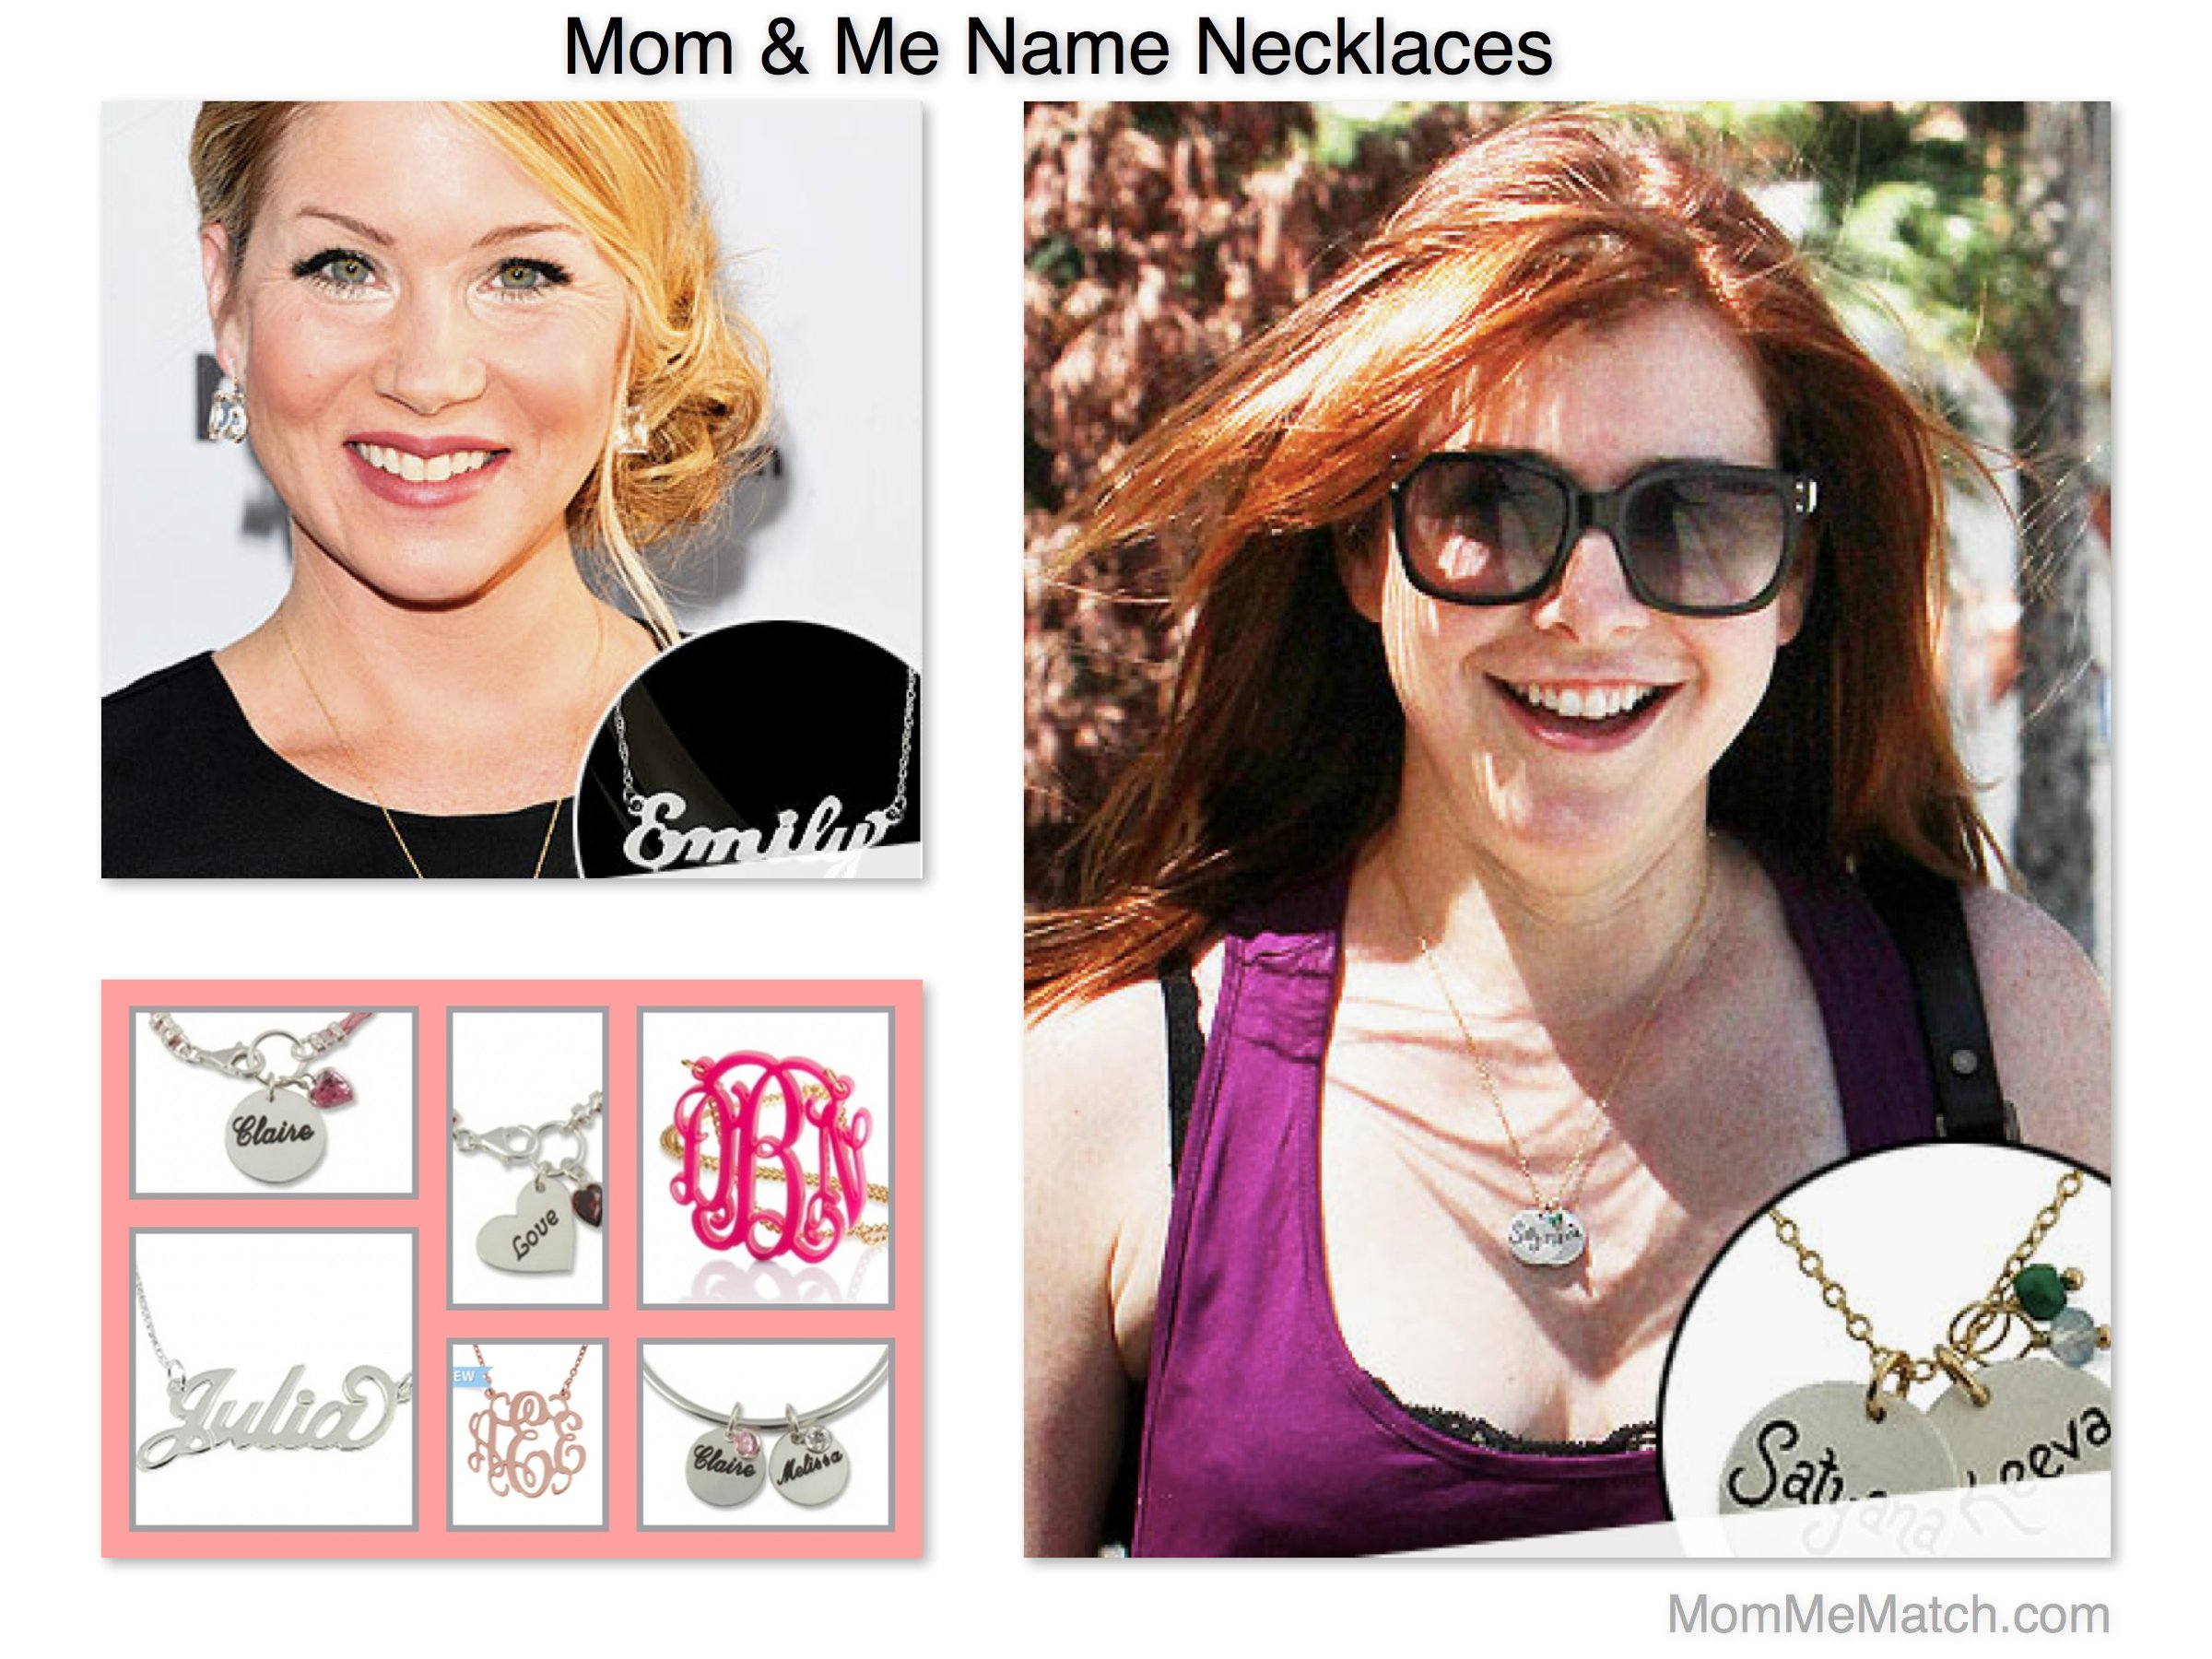 Mom & Me Name Necklaces